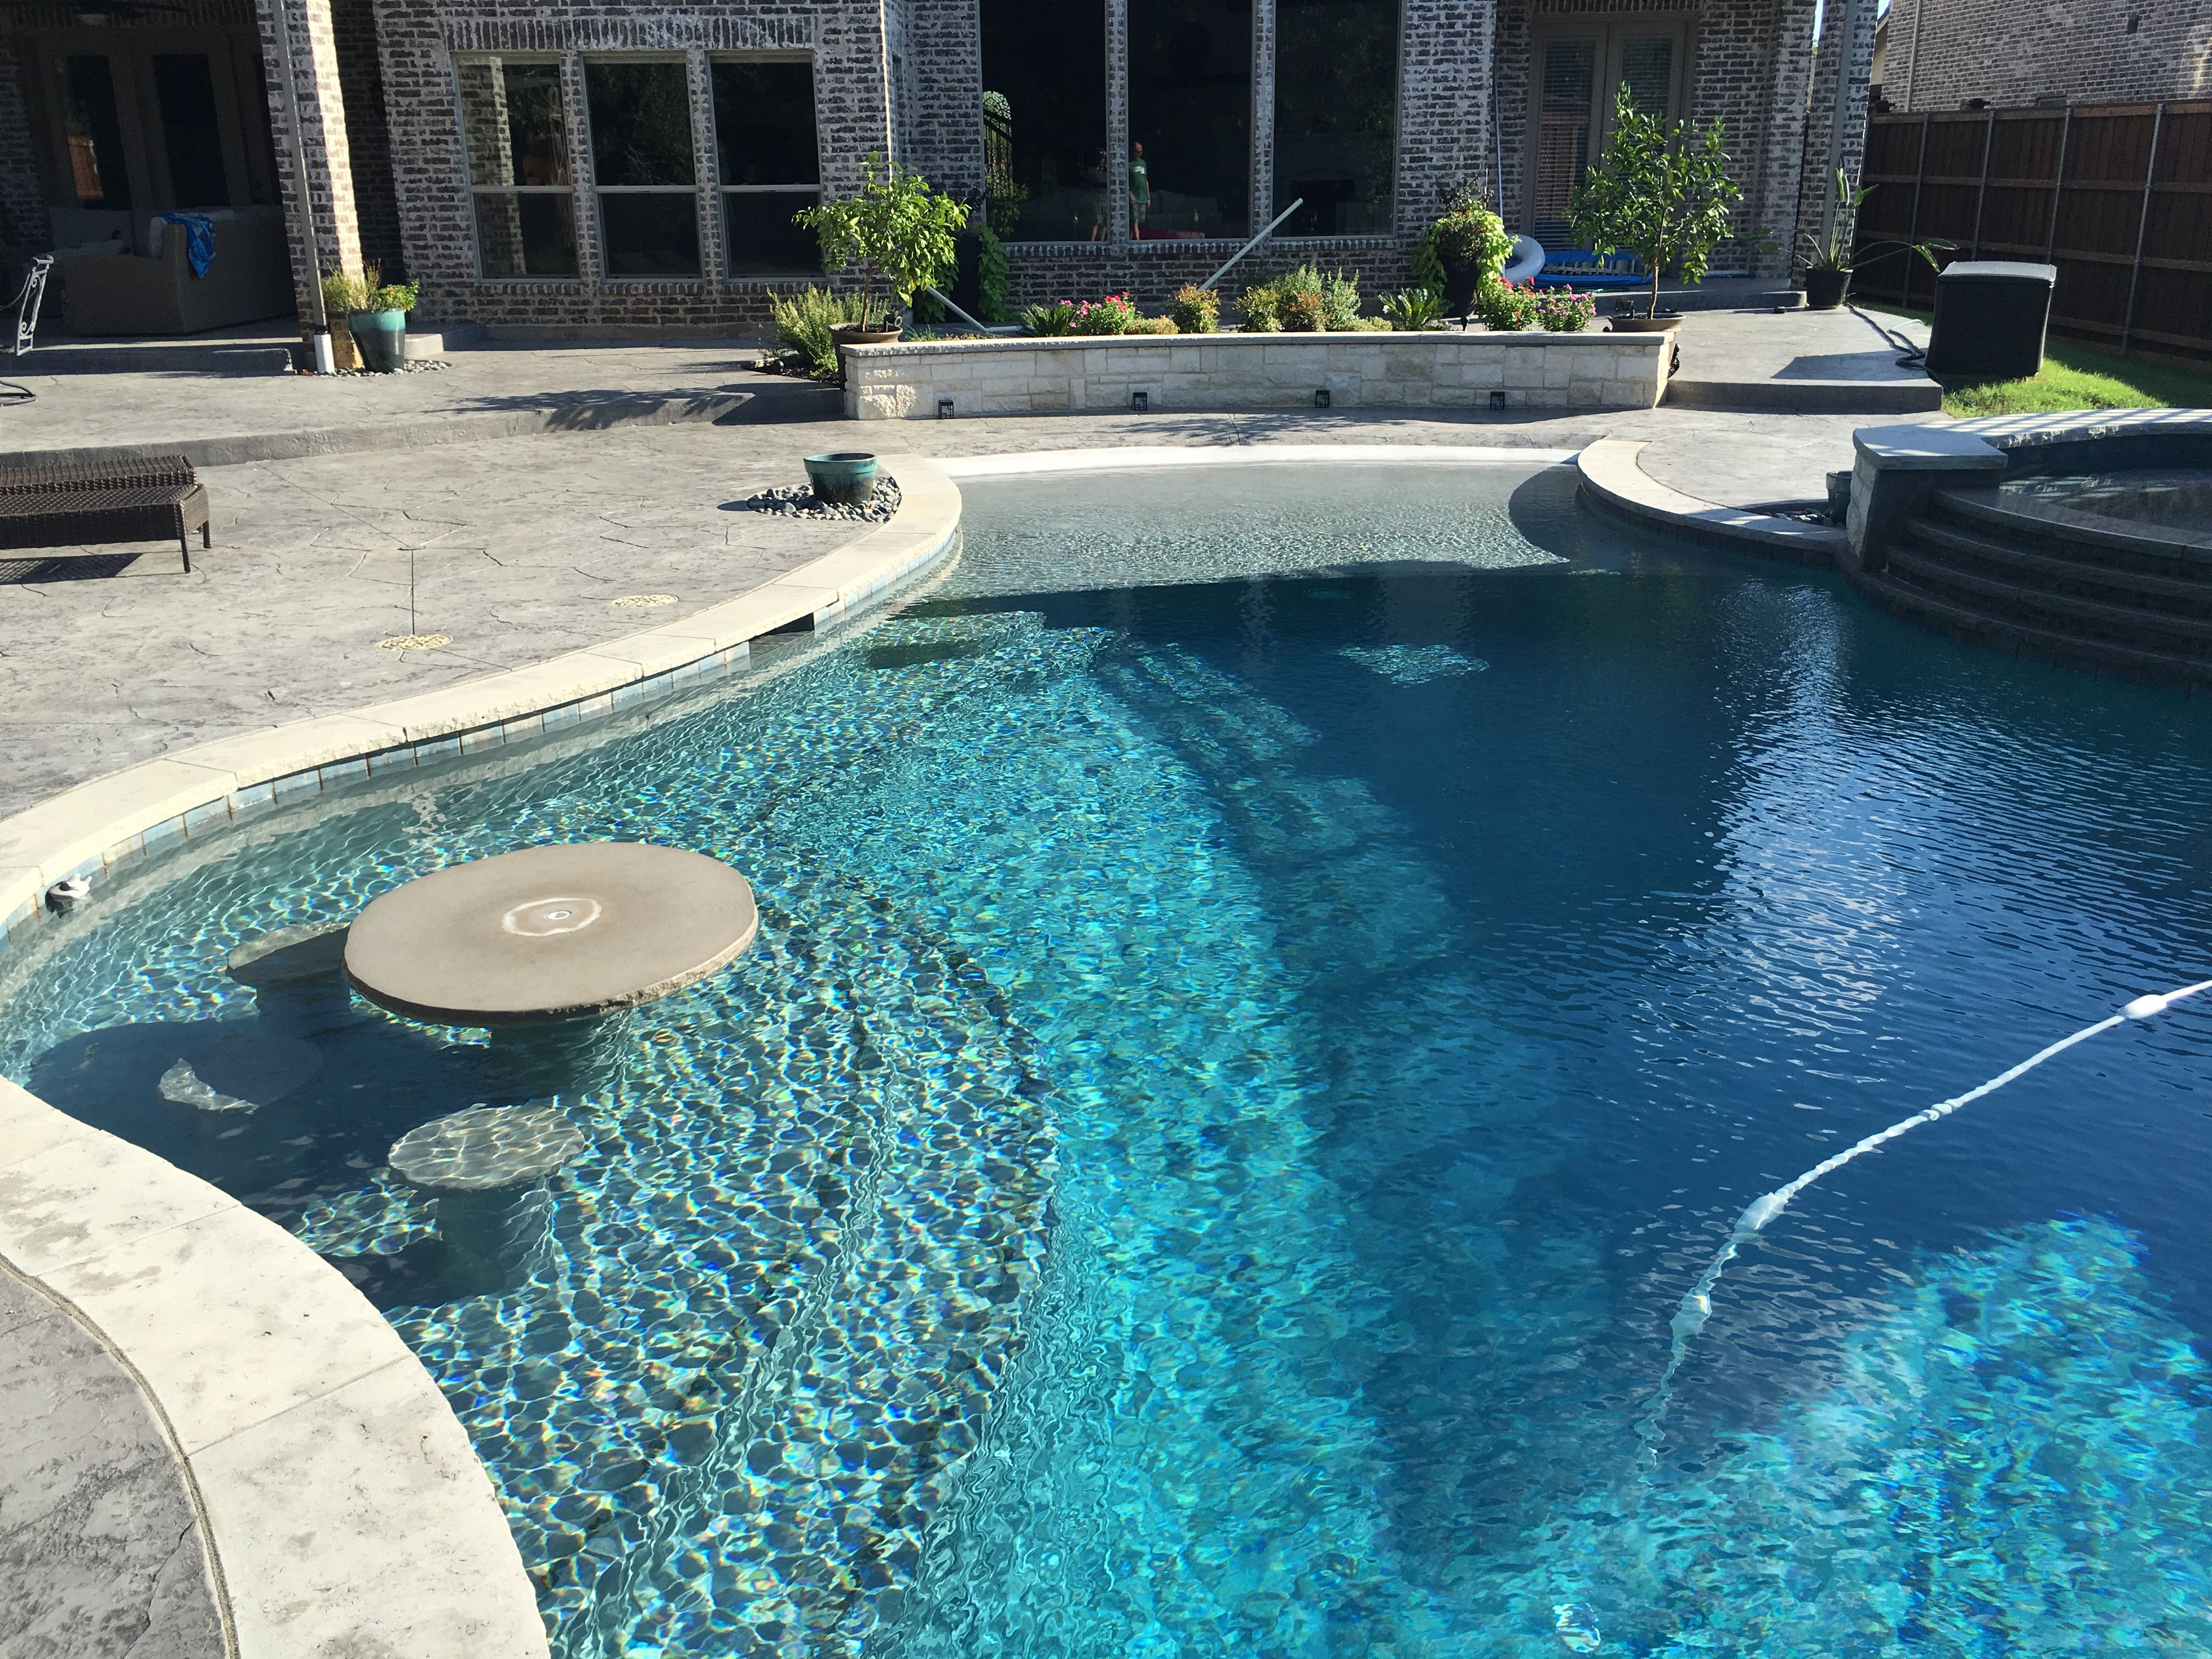 Diamond Brite French Gray Texas Traditions Outdoors Custom Pool Builder In Denton Dallas Fort Worth And All Areas Surounding D Pool Builders Pool Pool Colors